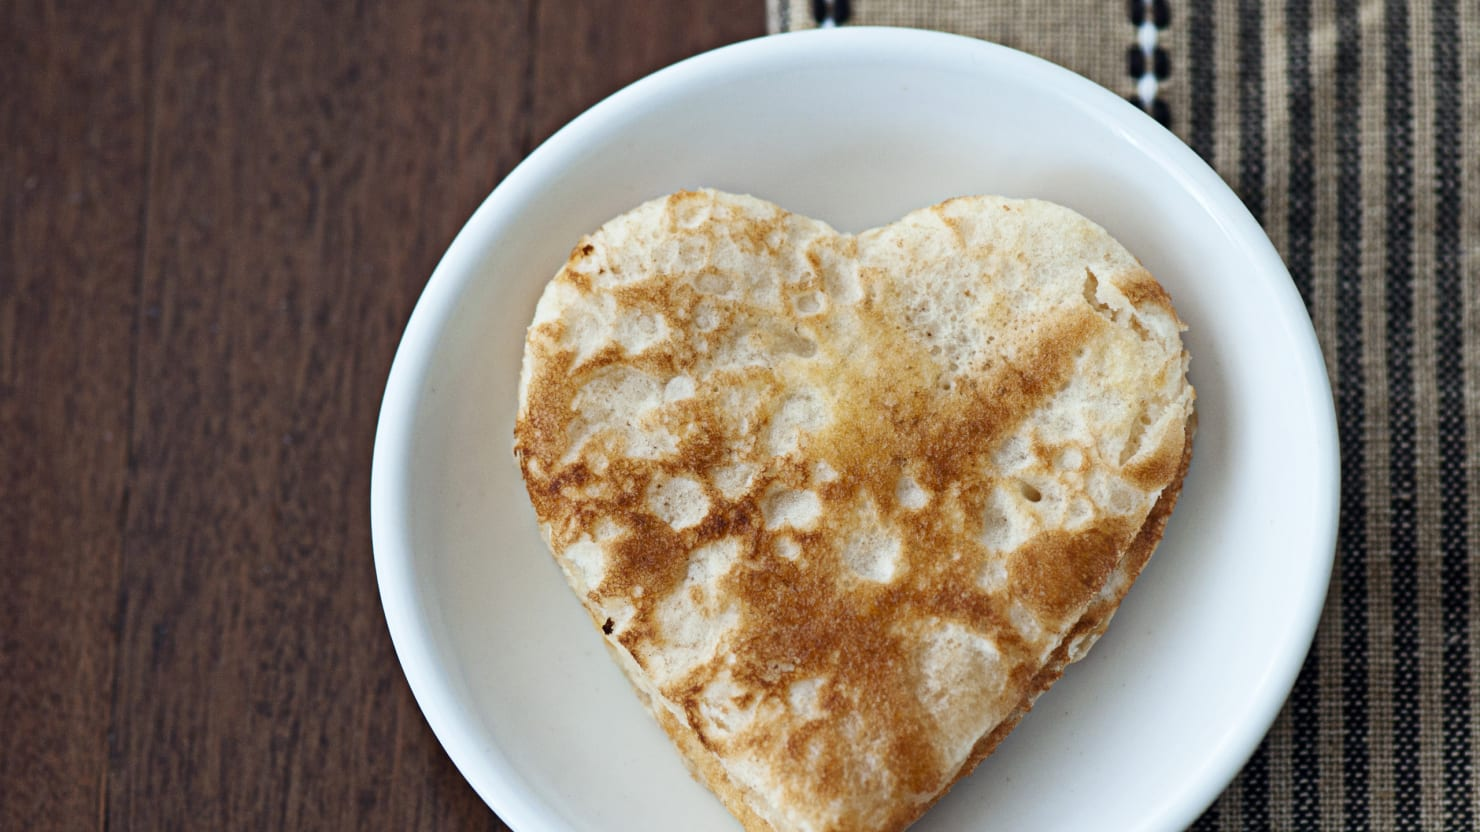 Cat coras valentines day menu for single people carolyn hebbardgetty forumfinder Choice Image